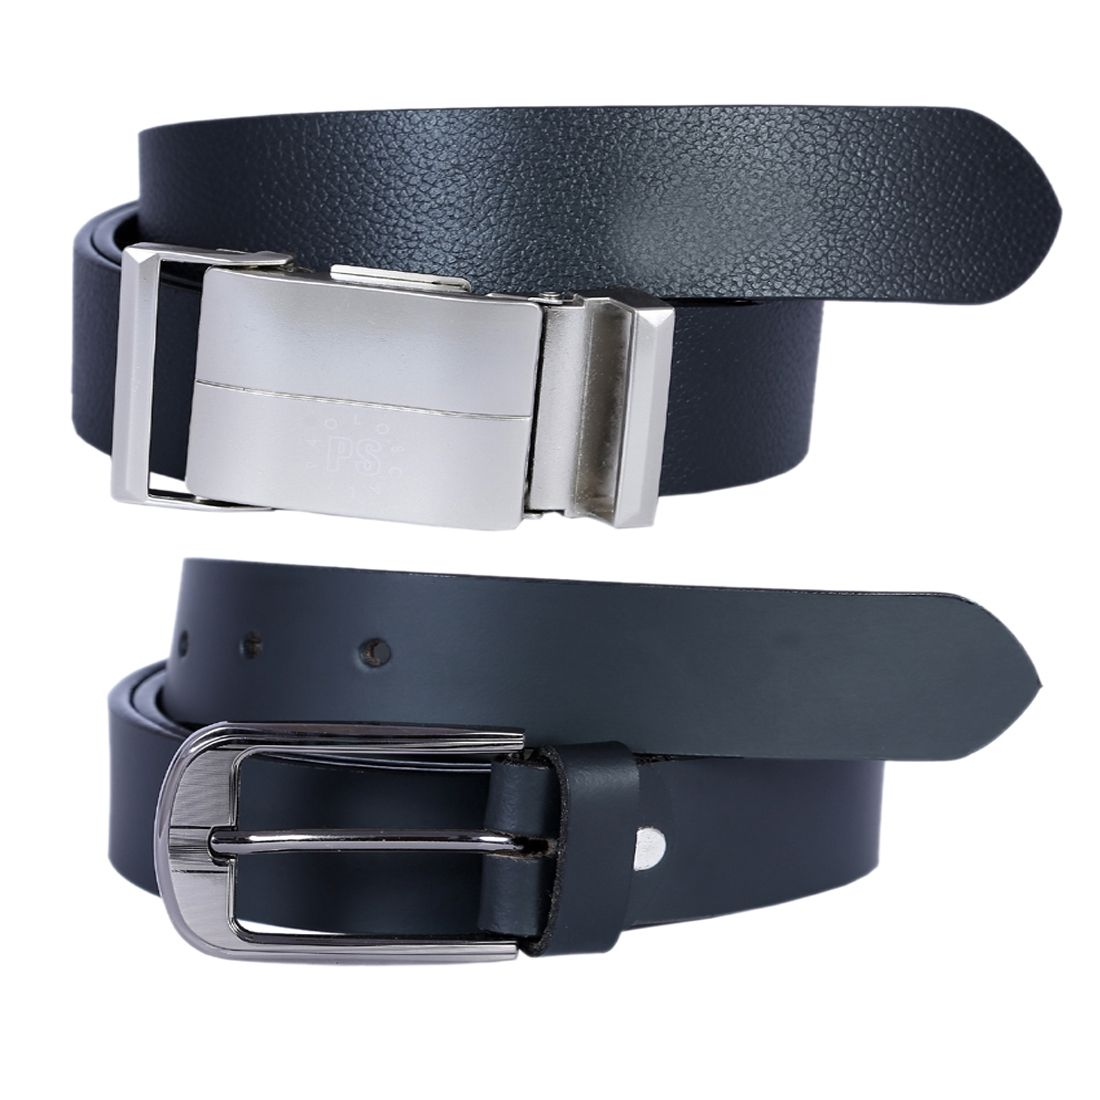 Kritika's World Black Leather Casual Belts - Pack of 2